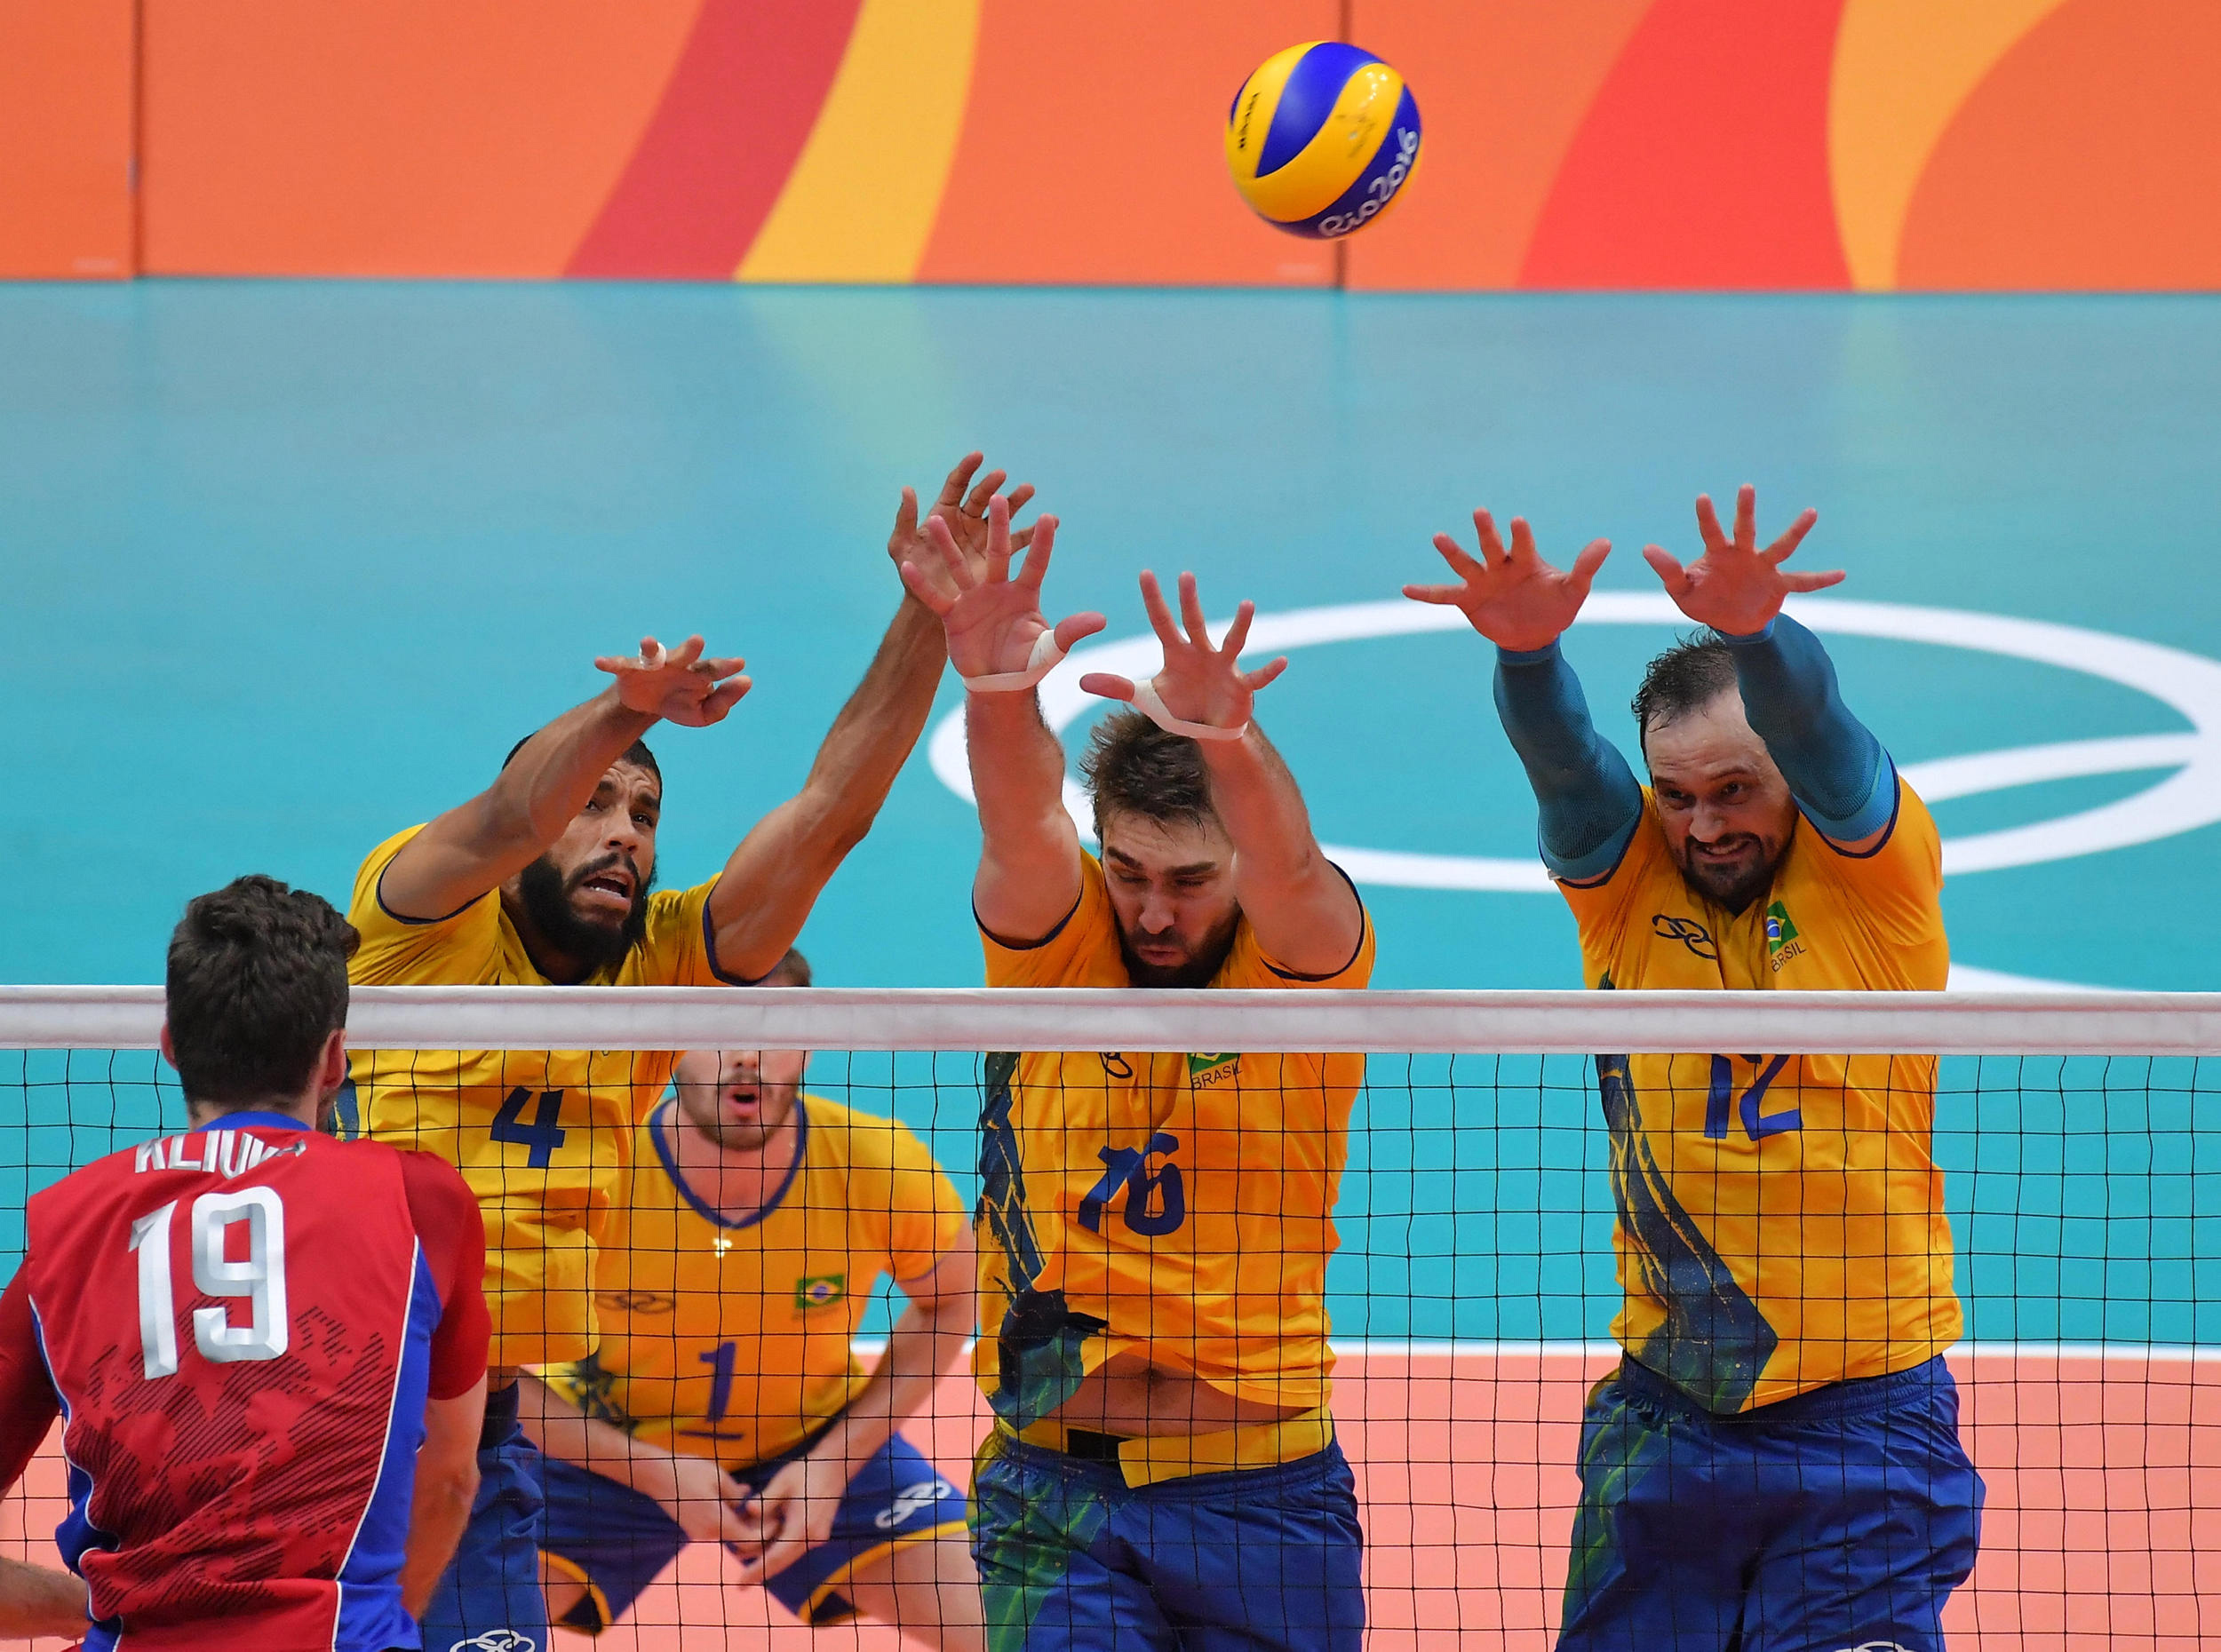 http://www.fivb.org/Vis2009/Images/GetImage.asmx?No=201653484&maxSize=960